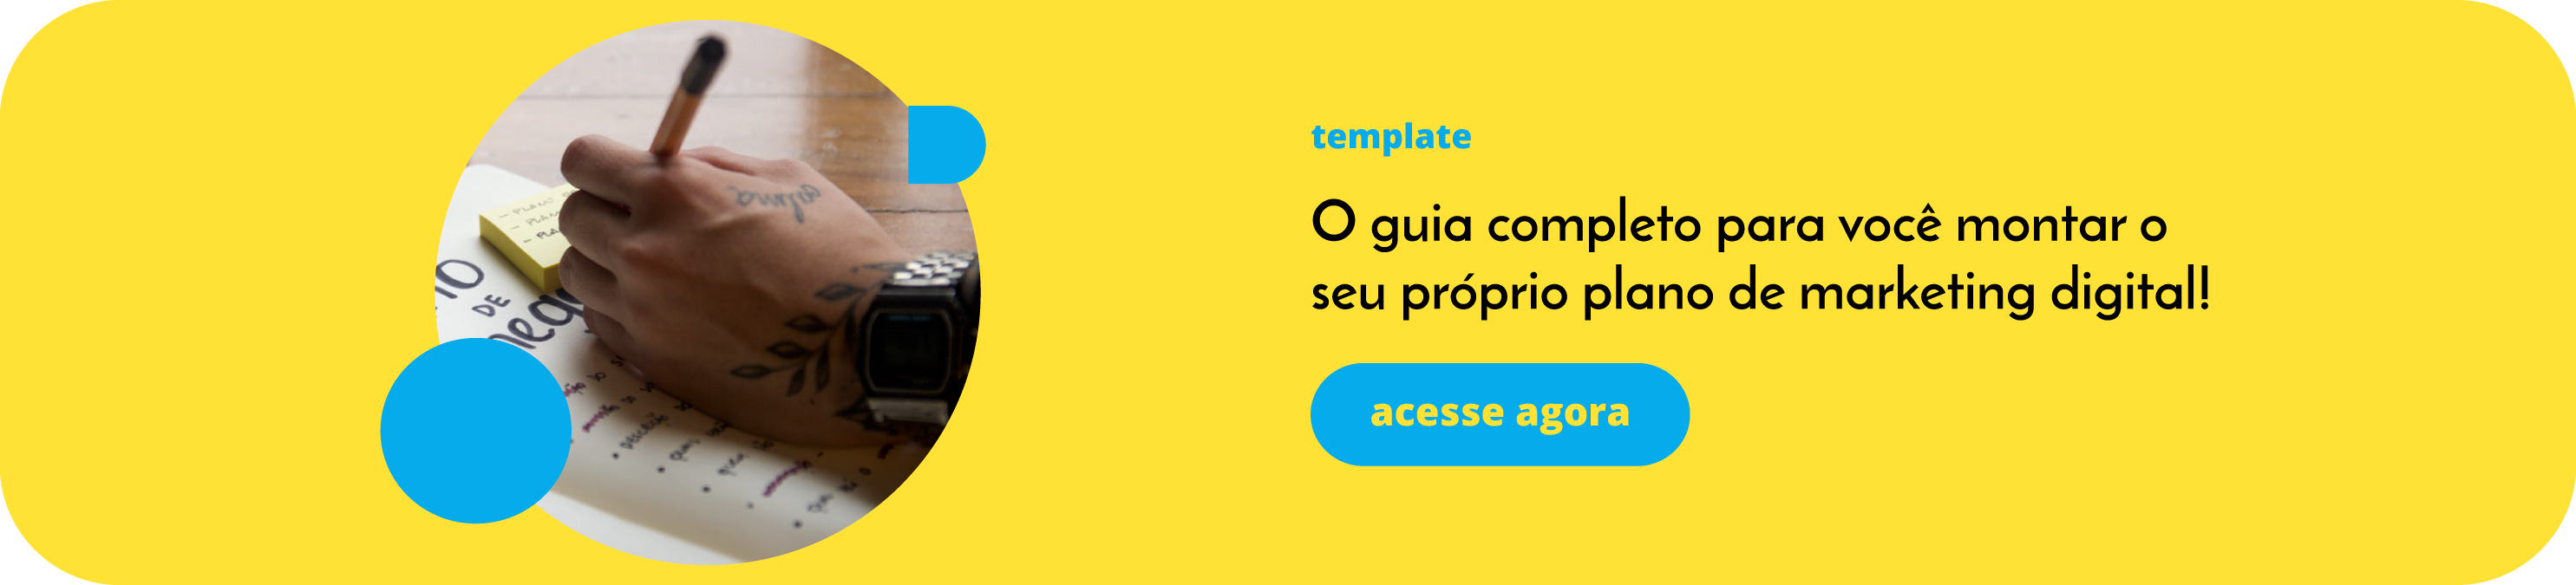 Template Plano de marketing digital